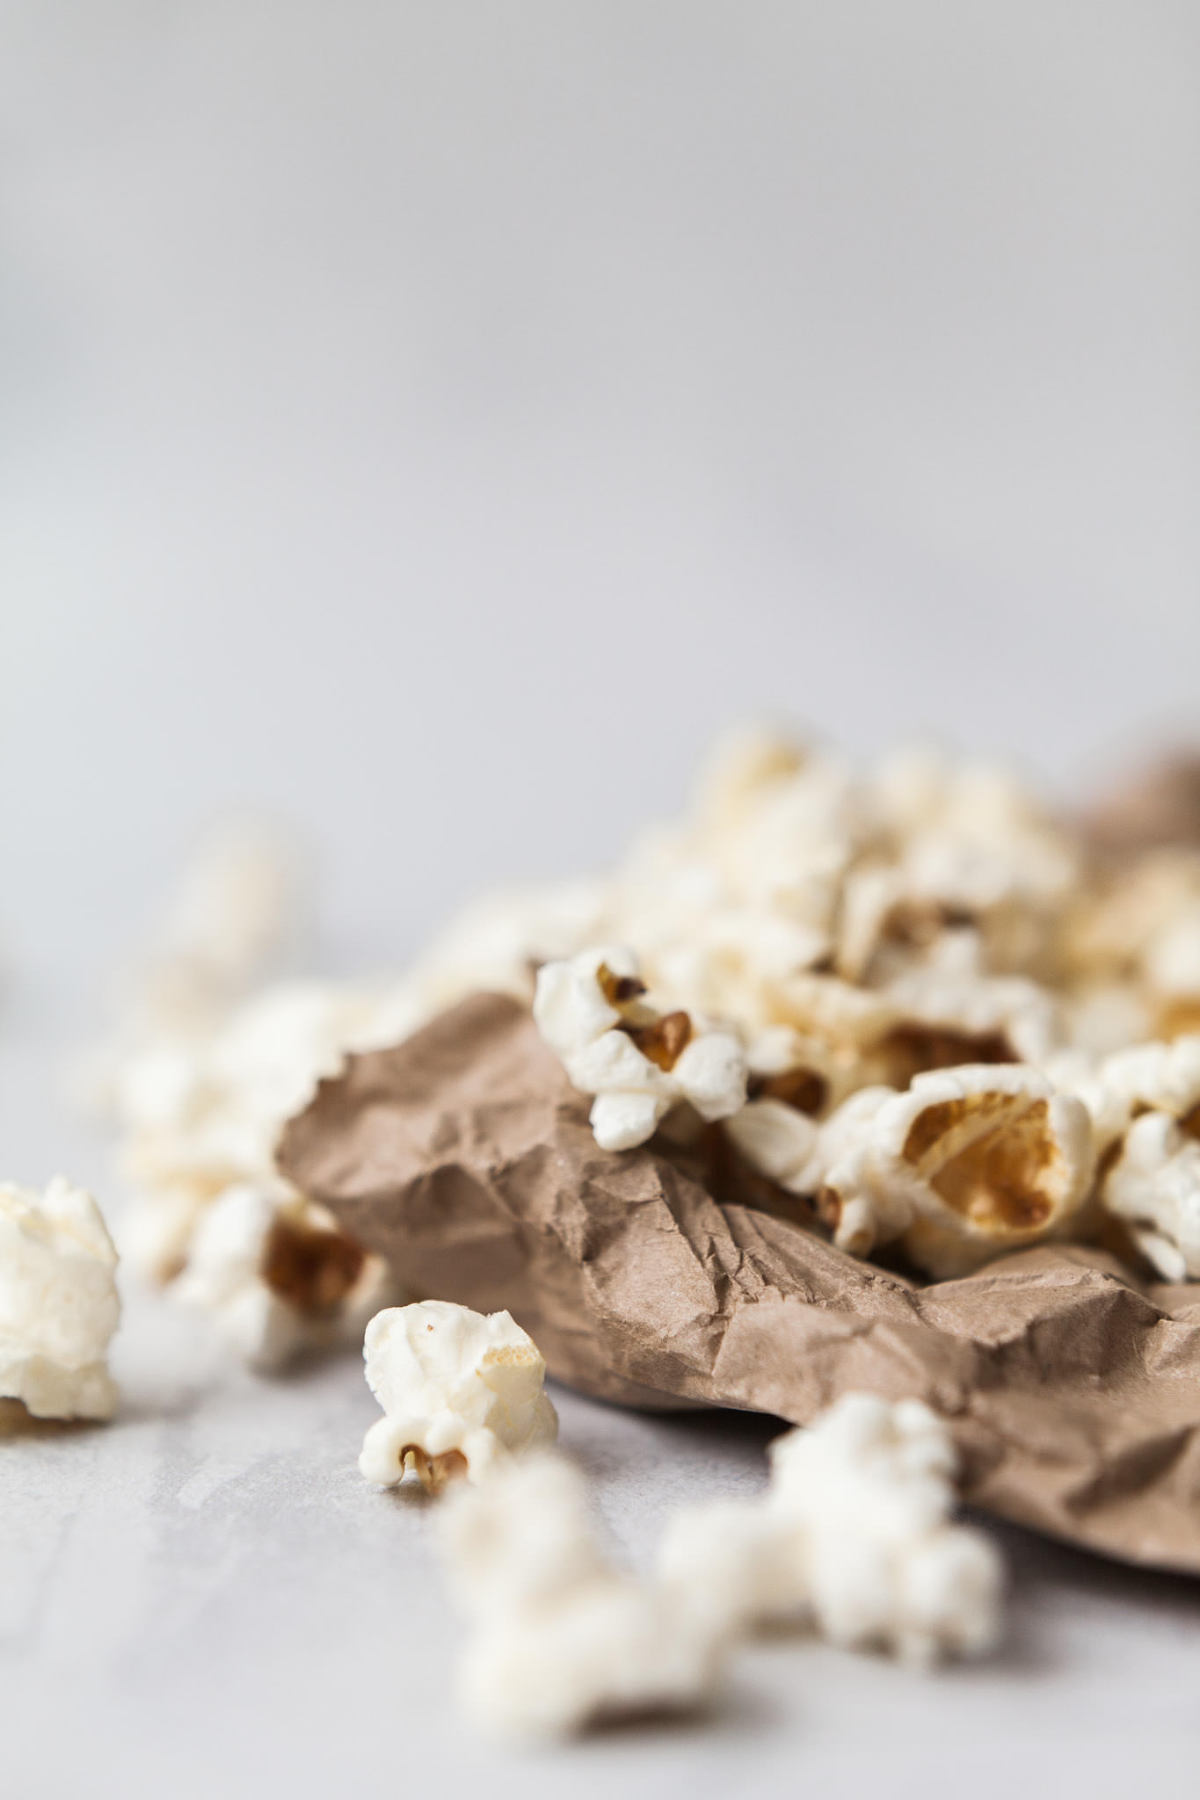 Food photography showing popcorn scattered over a brown paper bag